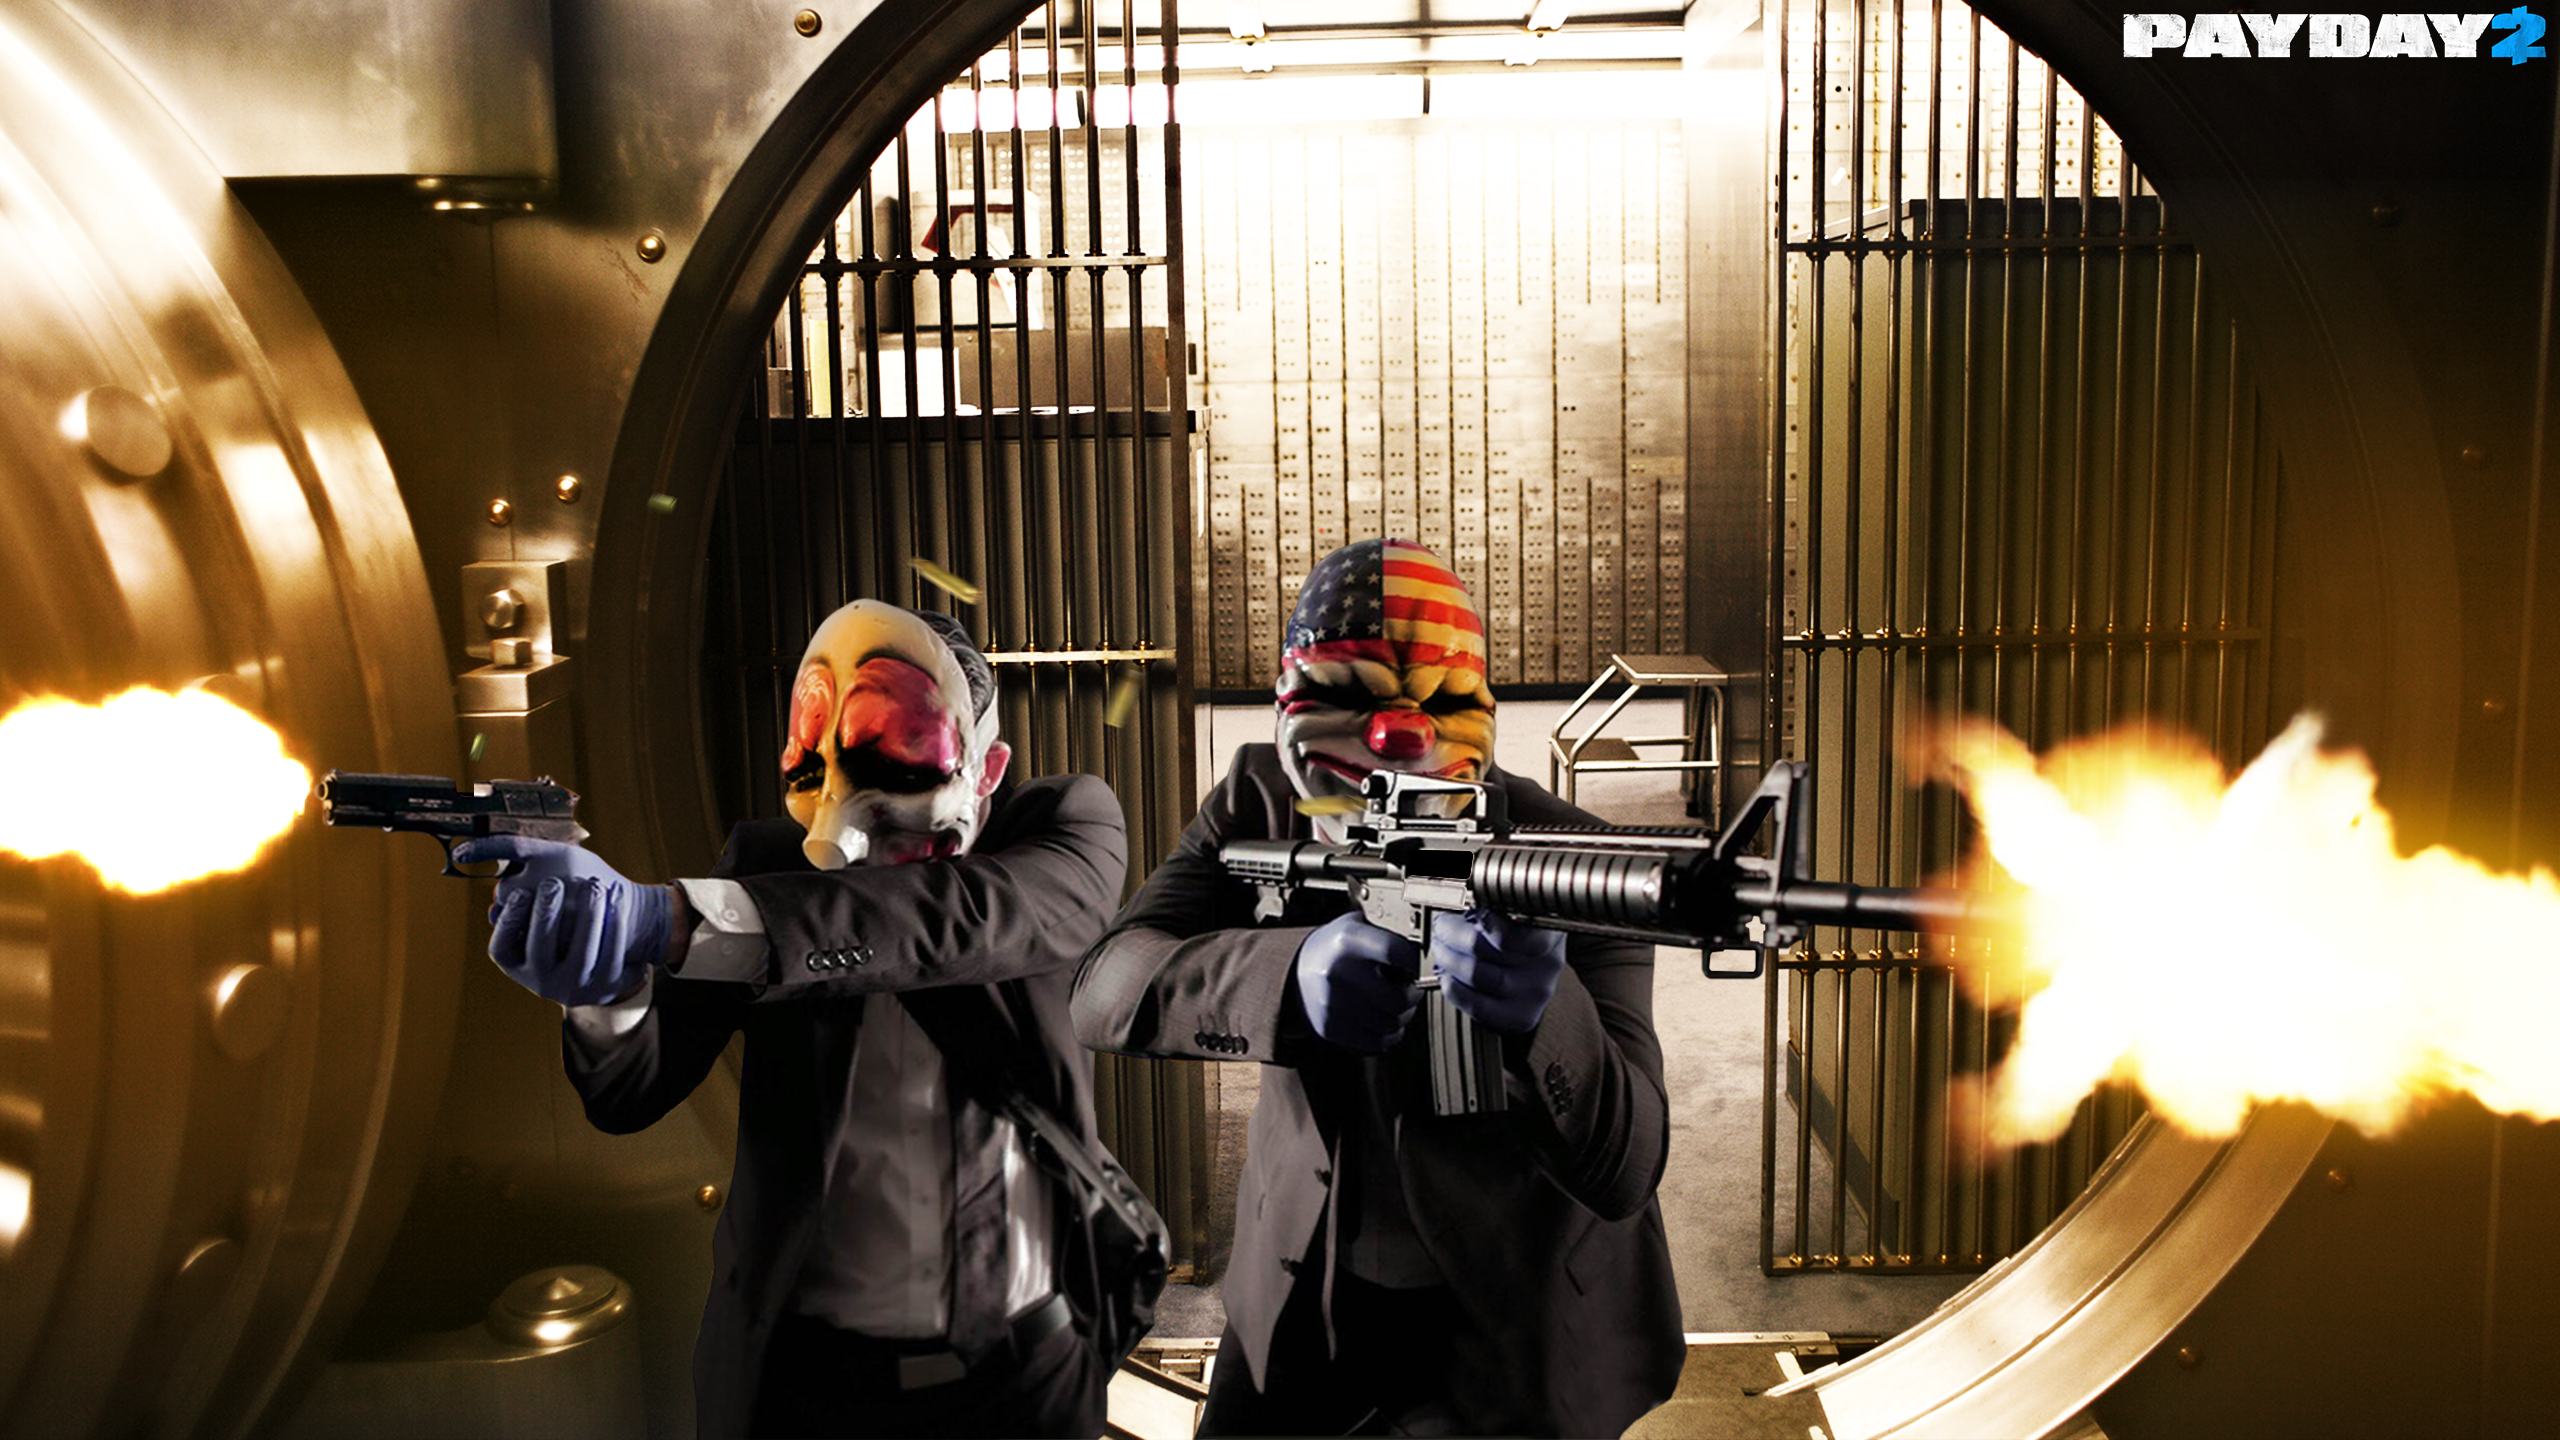 Payday 2 Wallpaper By Iamcondorrr On Deviantart